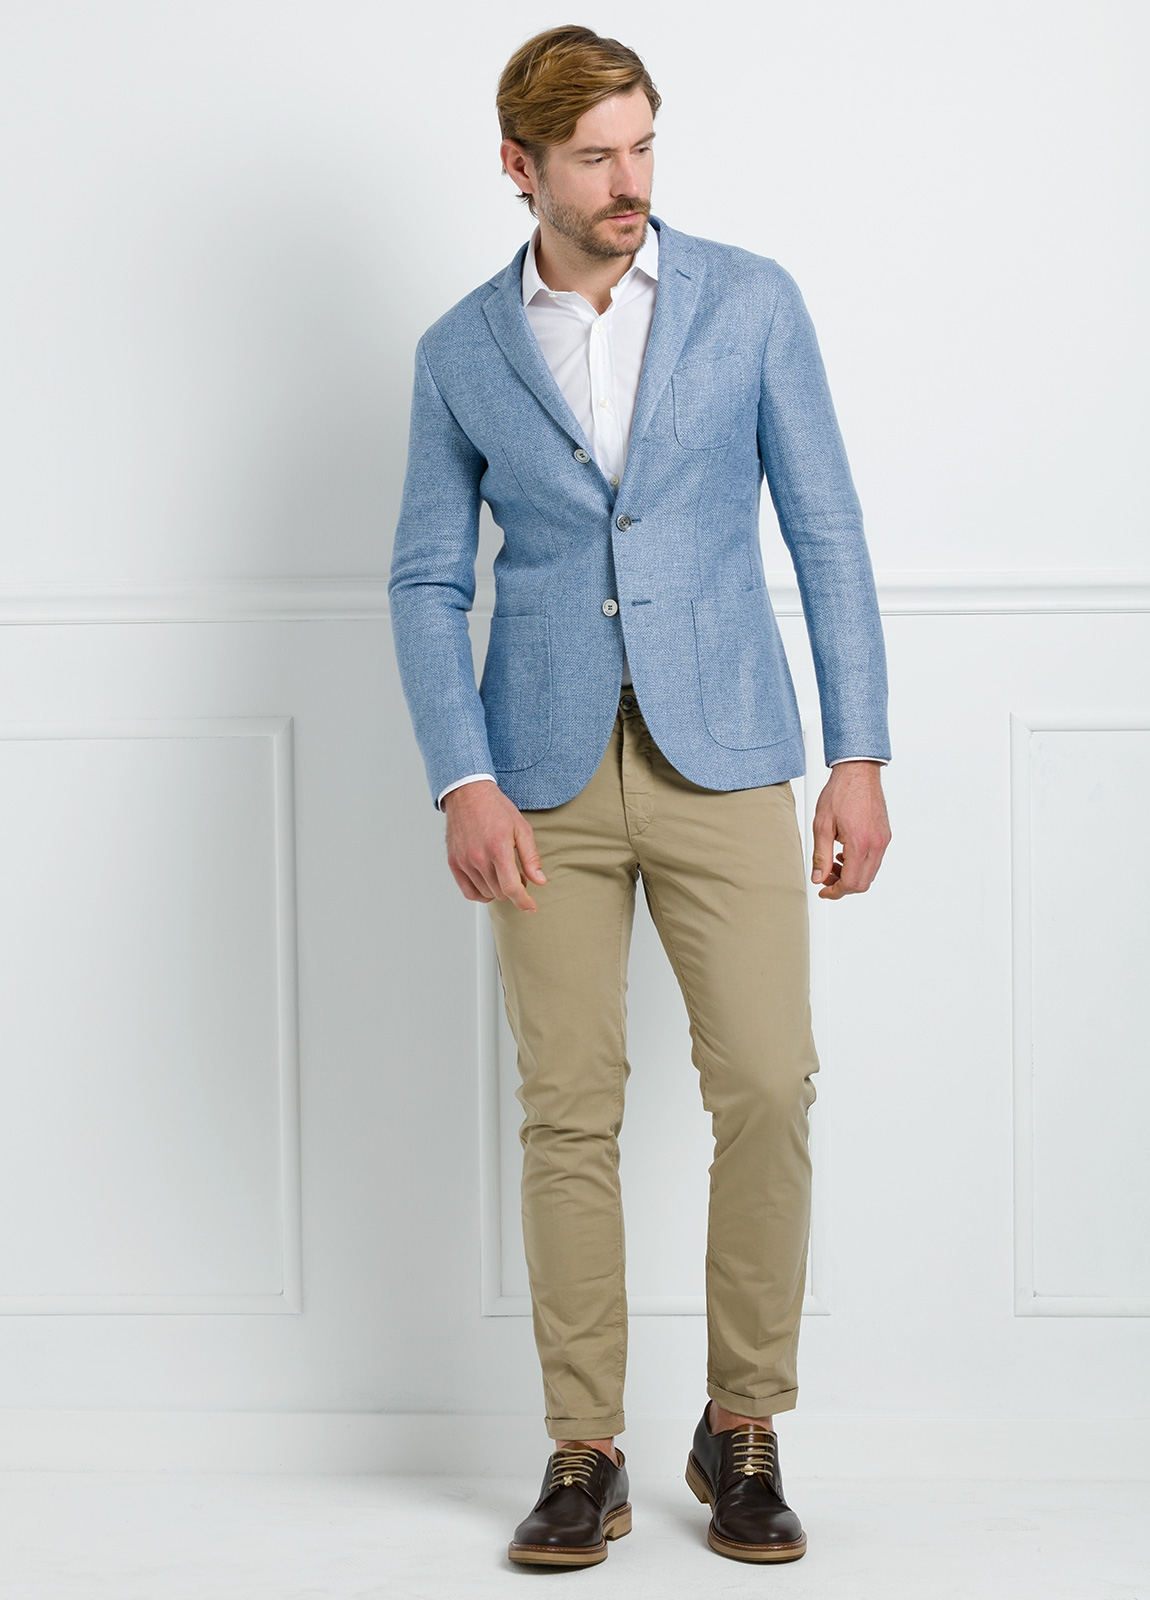 Americana SOFT JACKET Slim Fit textura color celeste. 75% Cáñamo 25% lana.